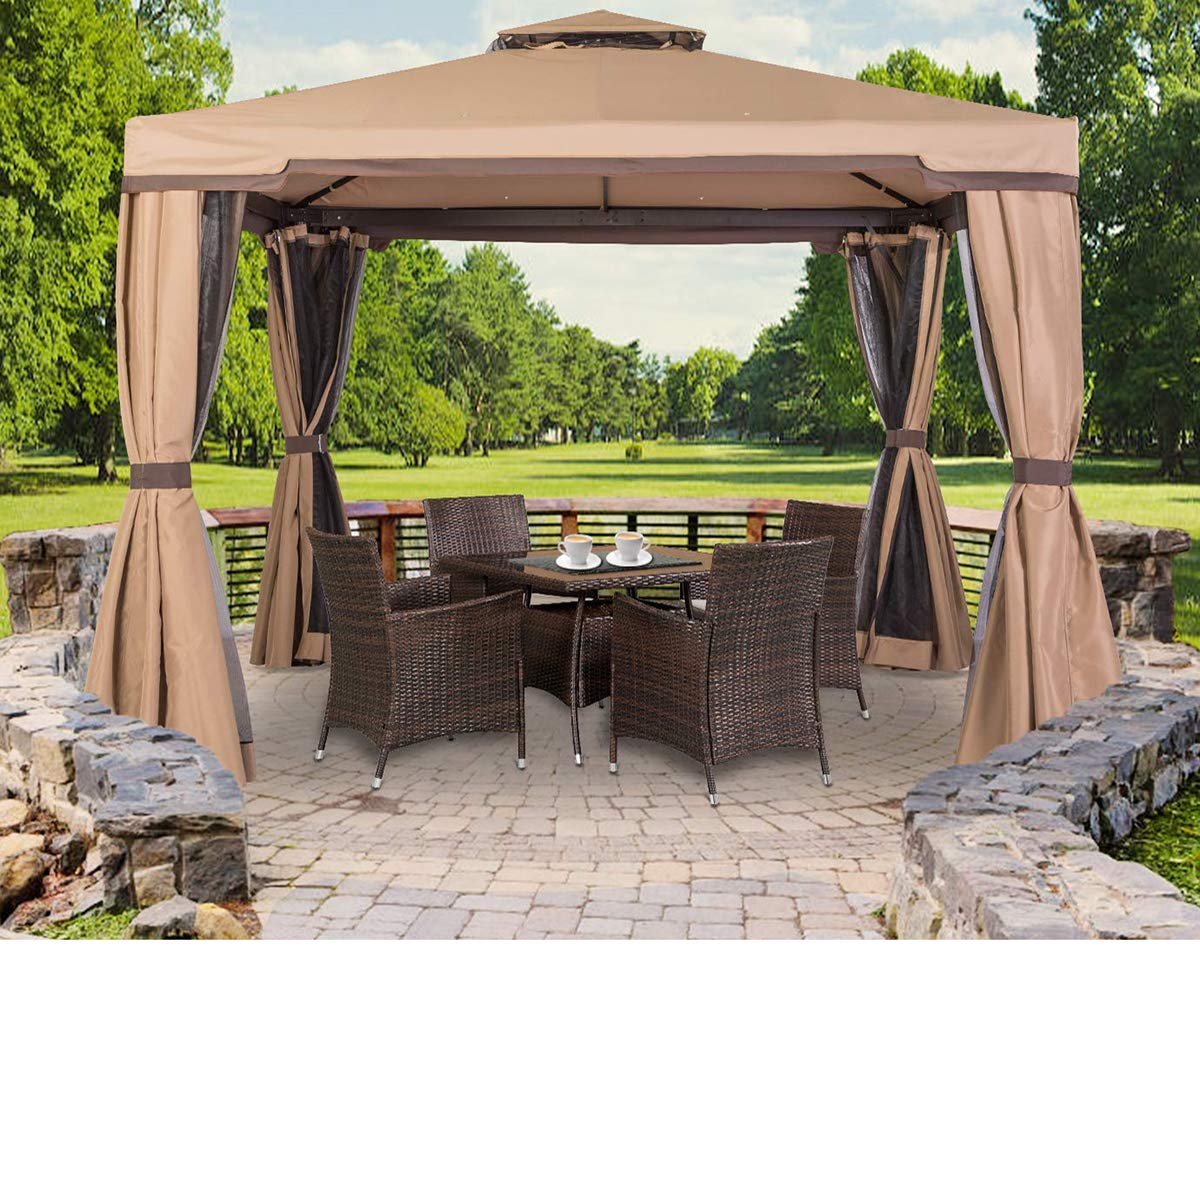 SUNCROWN Outdoor Patio Garden Gazebo 10 x 10 FT All-Season Permanent Gazebo with Vented Soft Canopy, Double Square Tops and Mosquito Netting- Beige, Front Porch, Sand